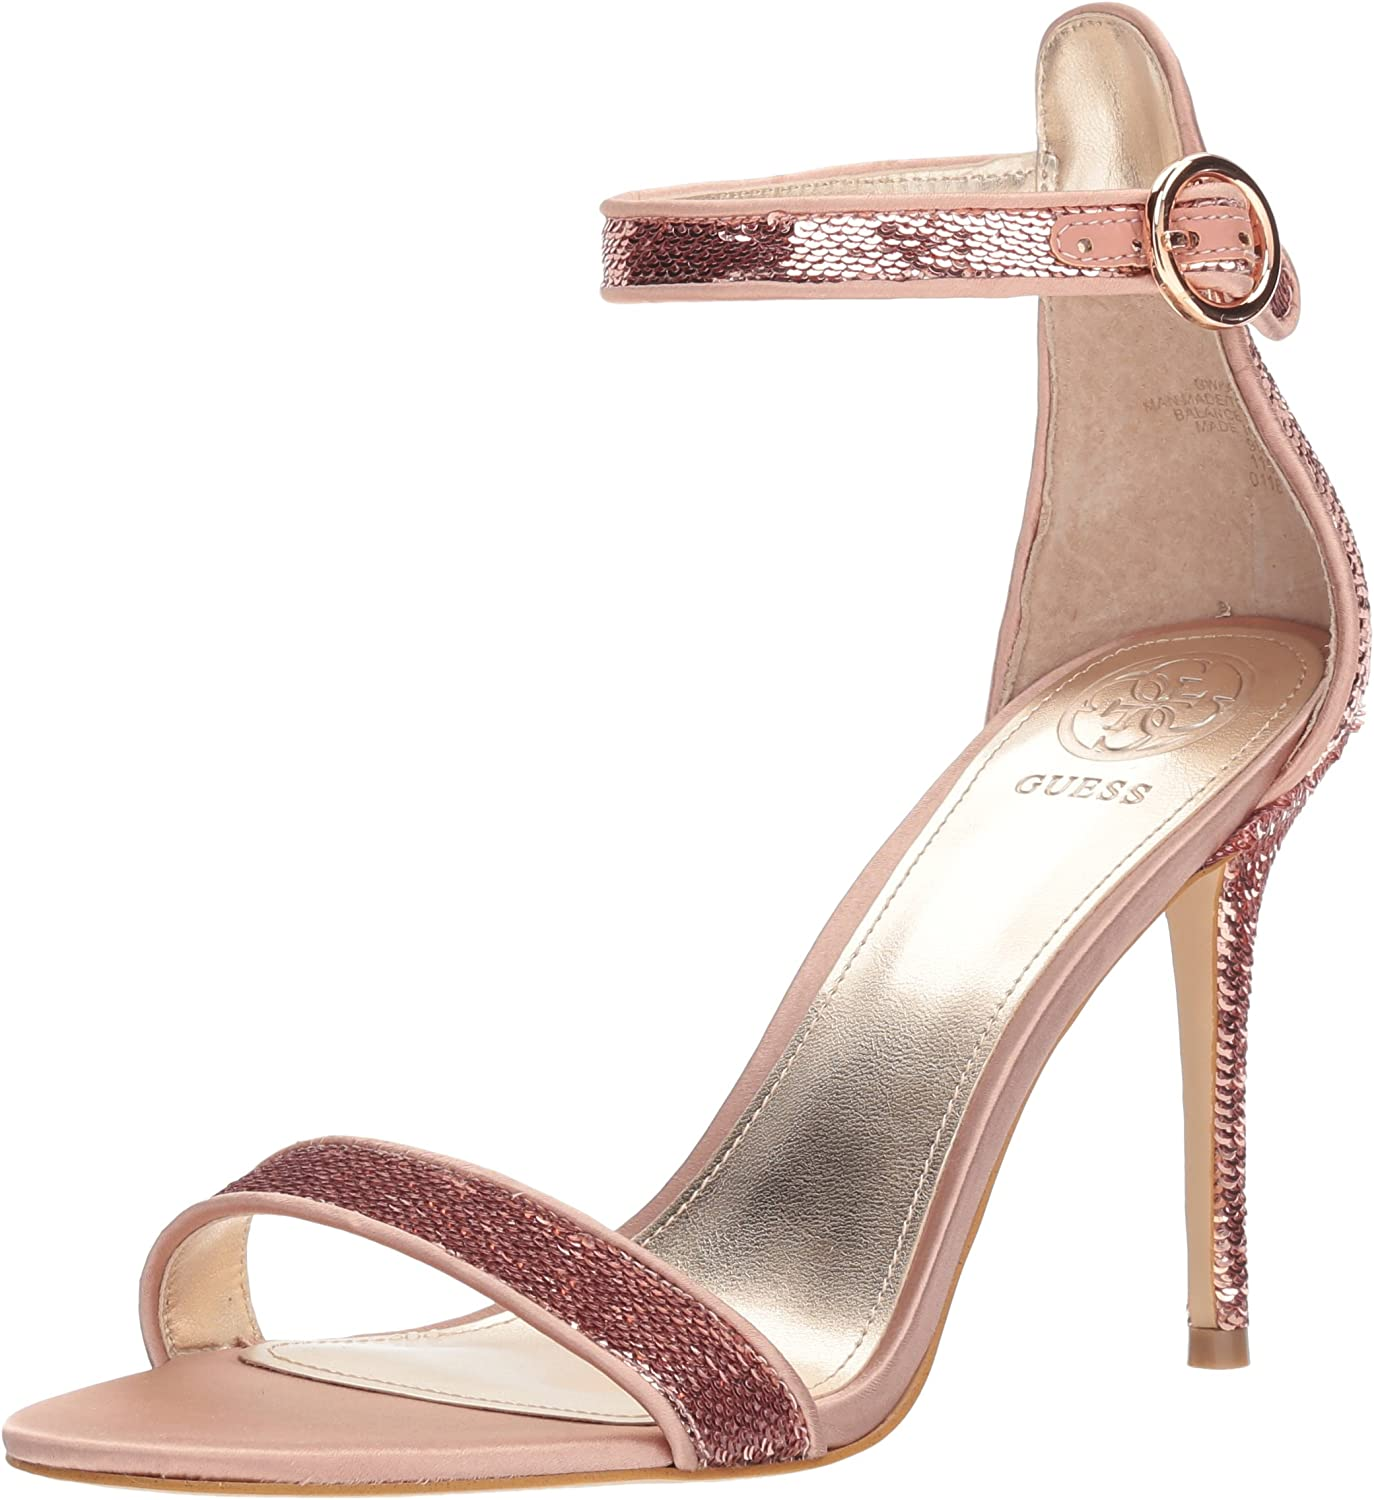 GUESS Women's Kahluan Heeled Sandal